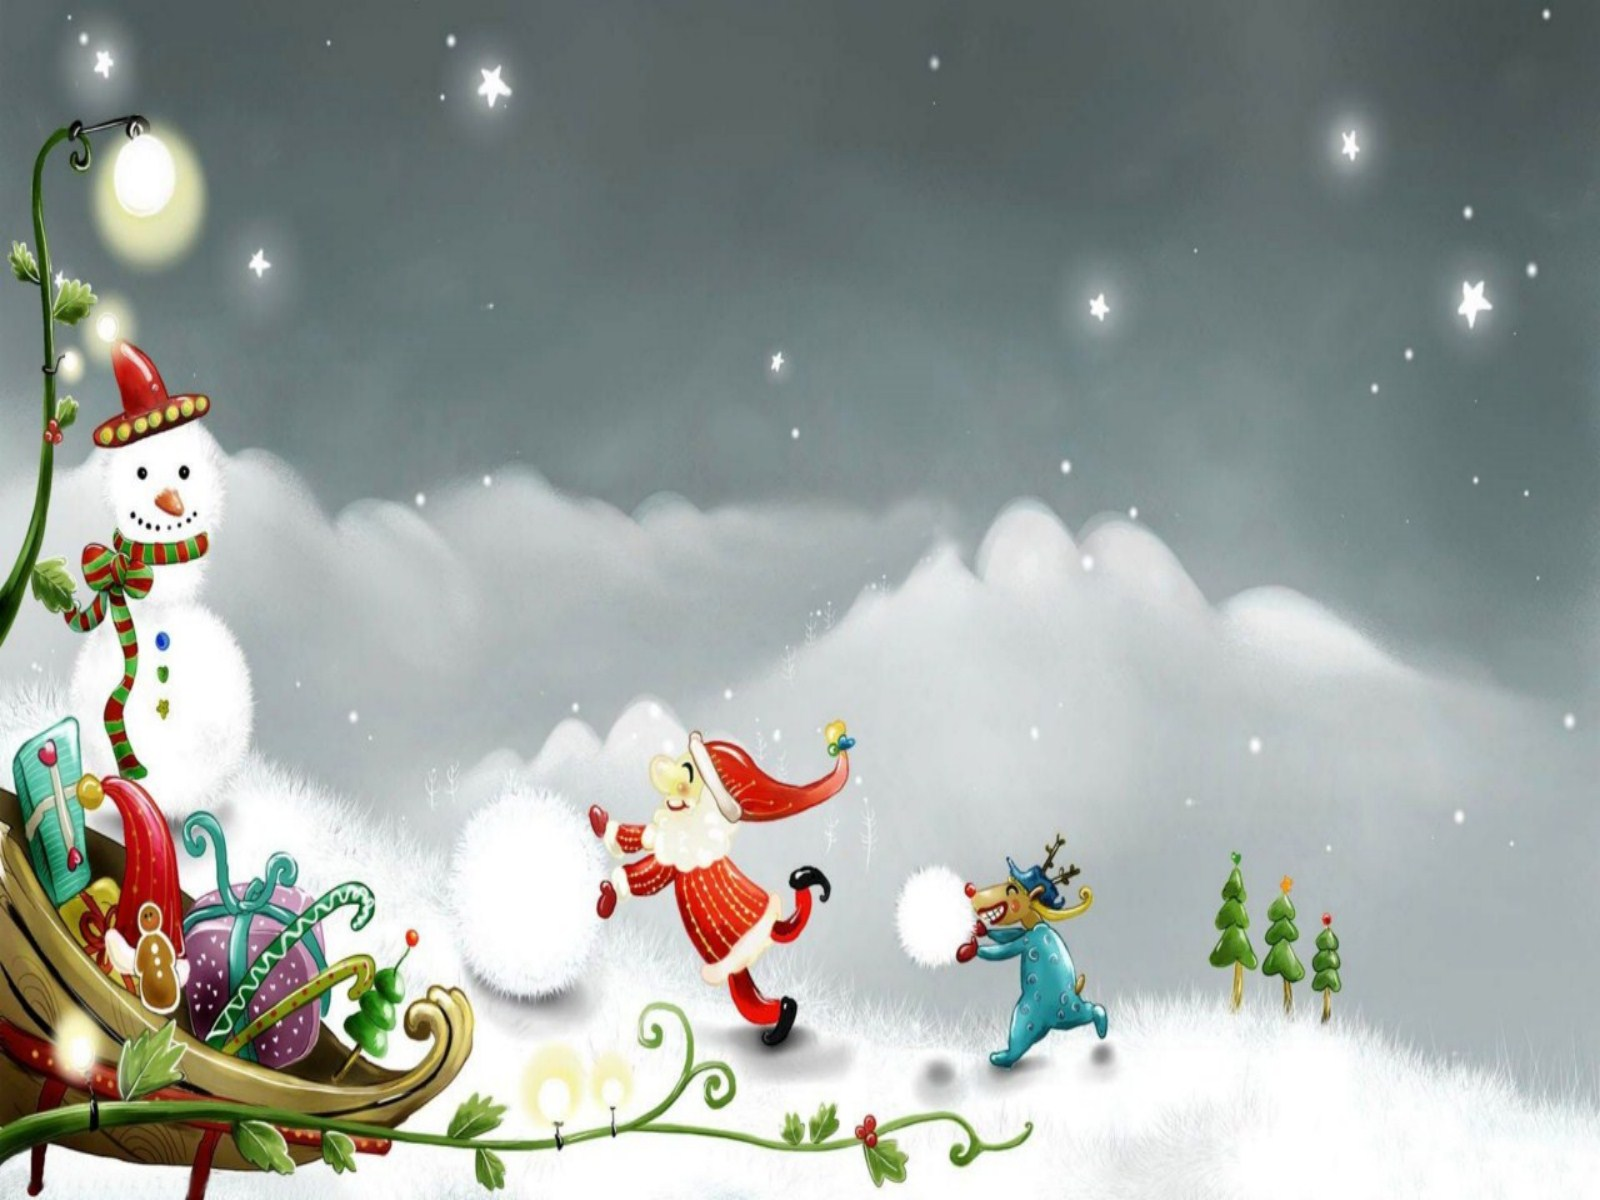 Free funny christmas wallpaper wallpapersafari - Free funny christmas desktop wallpaper ...